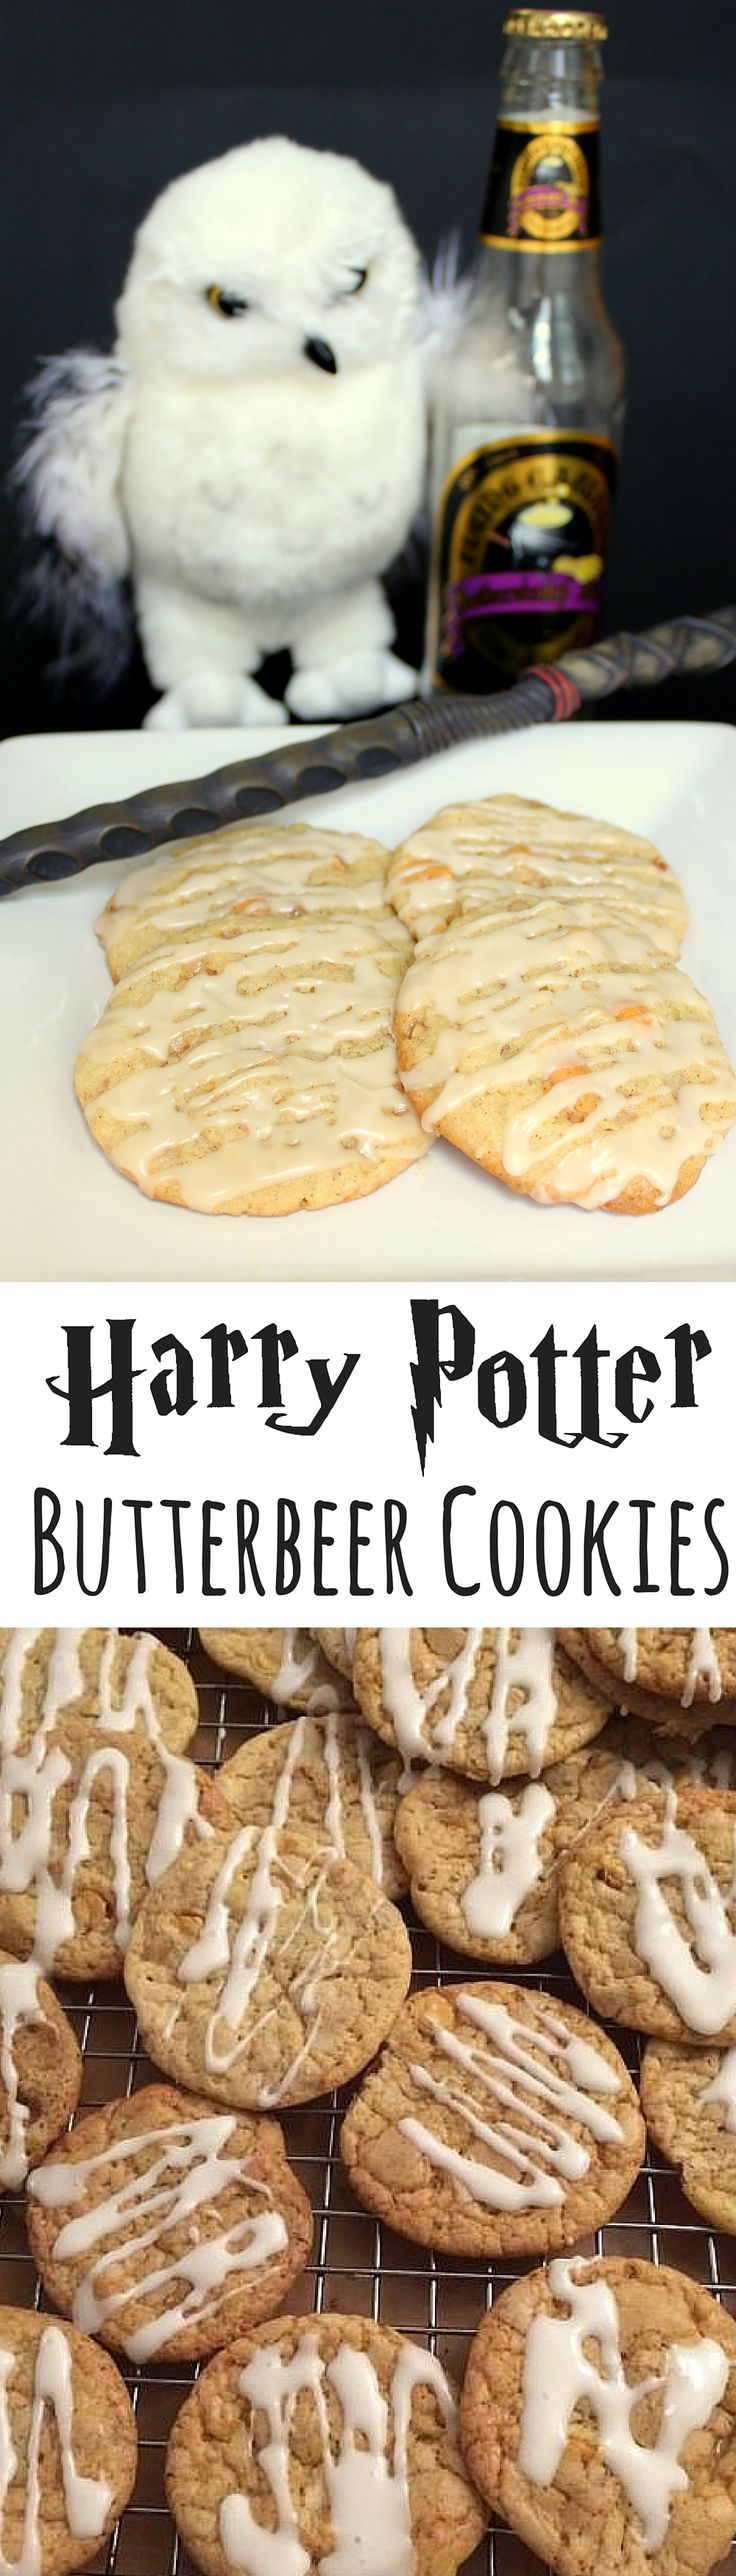 Love Harry Potter? Then you'll love these Butterbeer Cookies! They'll transport you straight to The Three Broomsticks, The Hog's Head or the Leaky Cauldron.